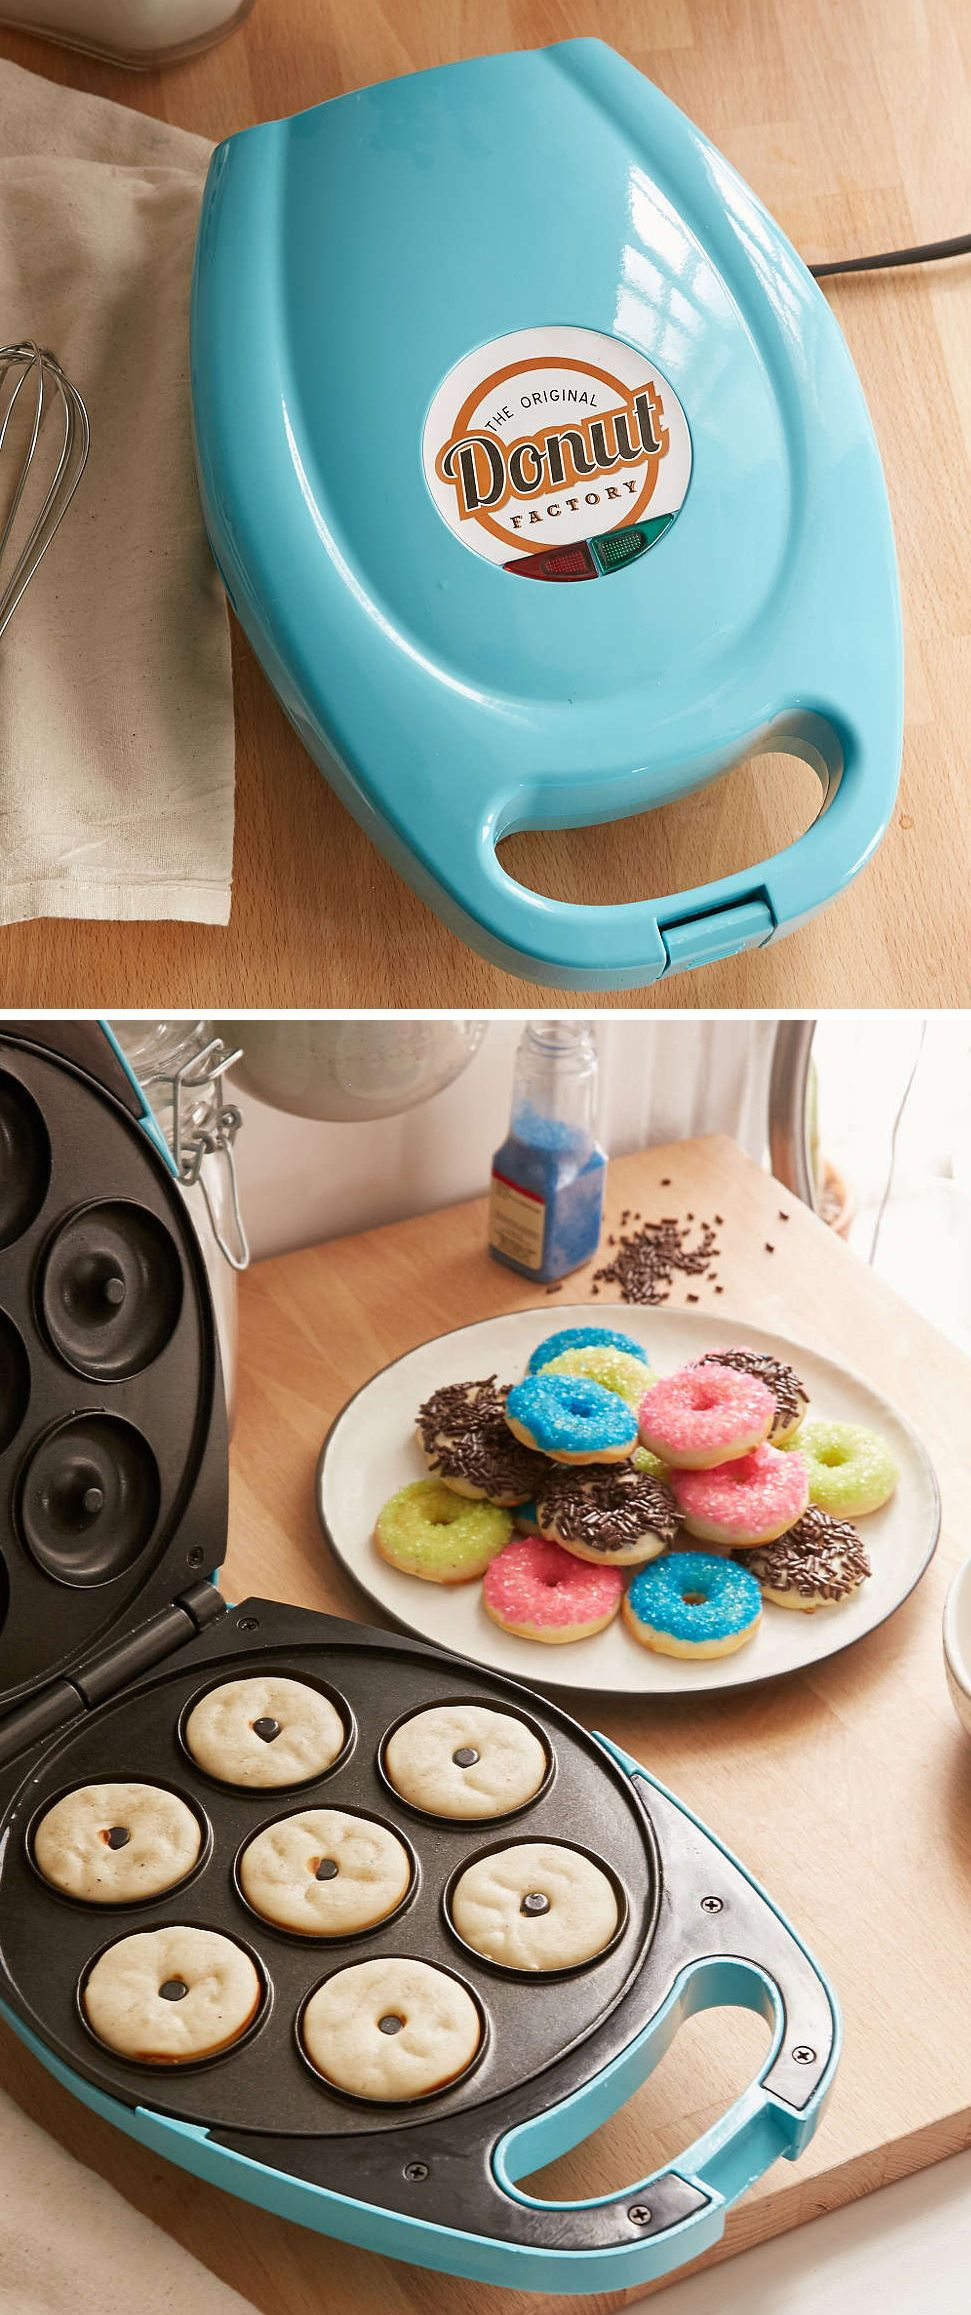 Teal Mini Donut Maker More